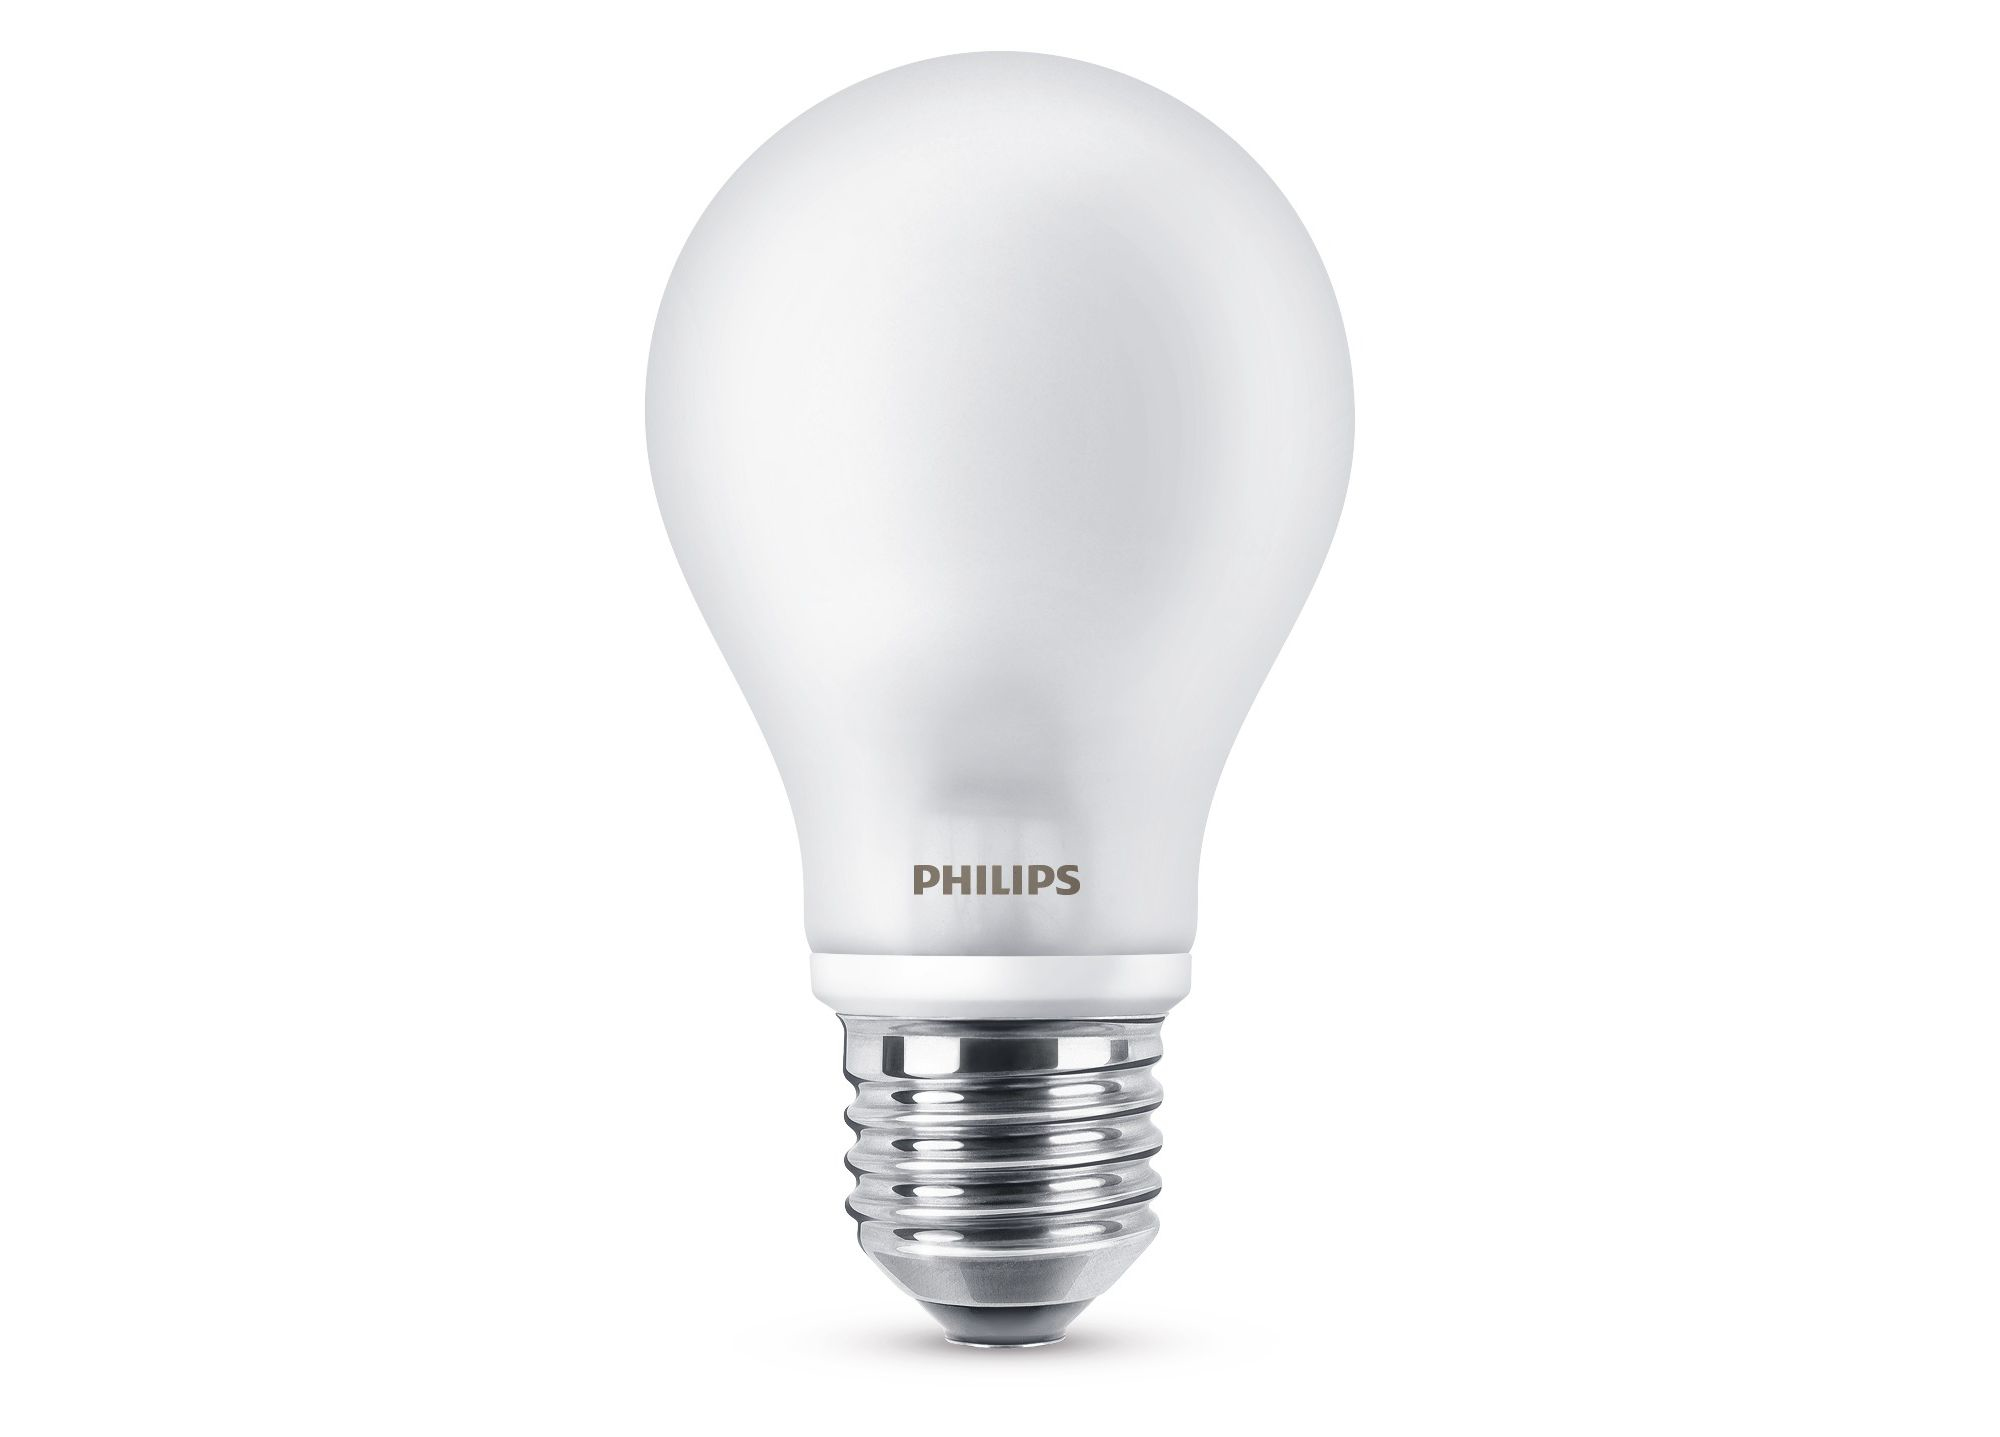 Philips Lampadina a LED - Lampadina a LED - Incaled75865